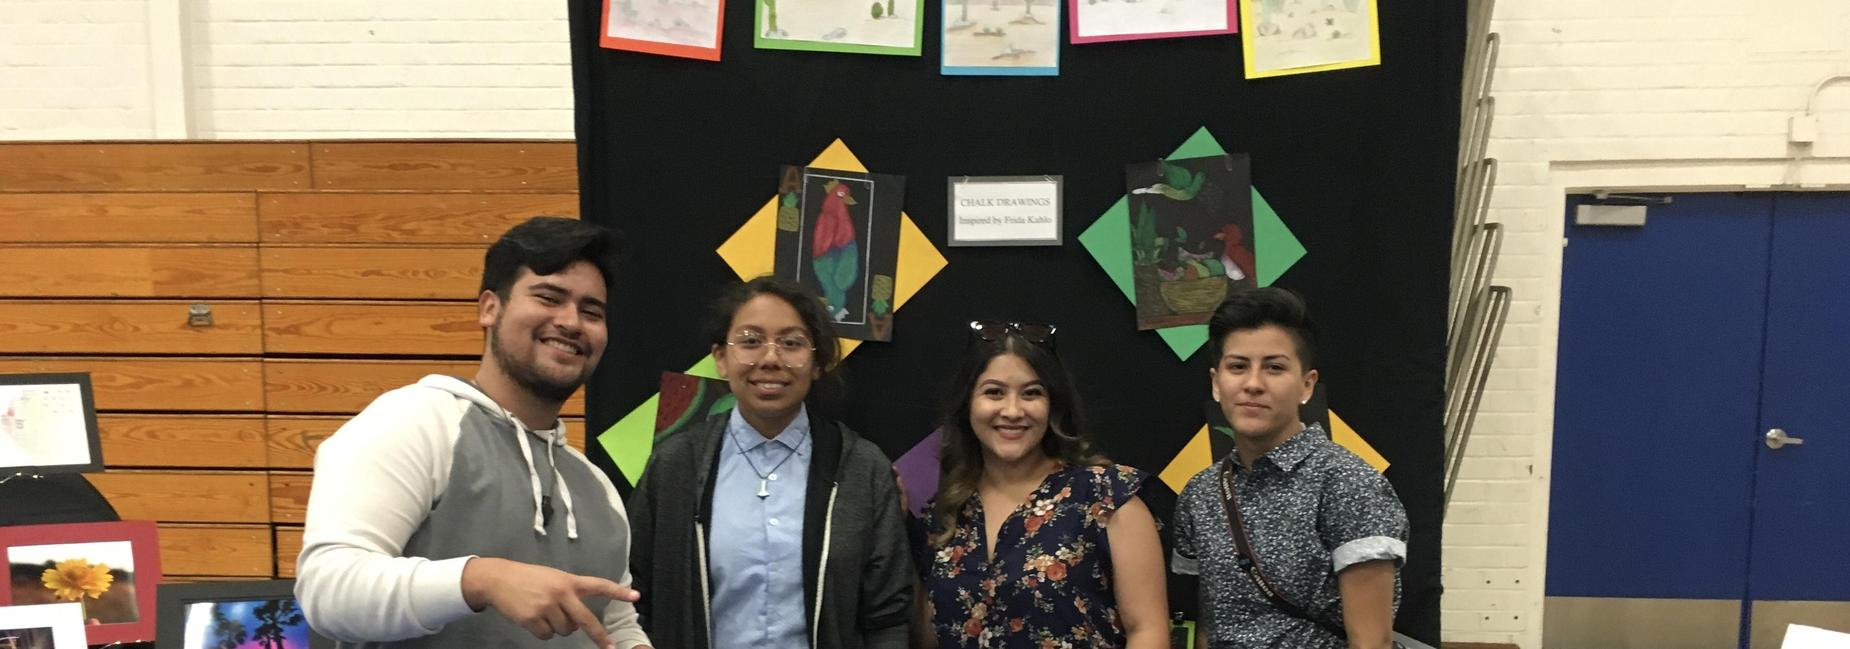 Students pose in front of student artwork